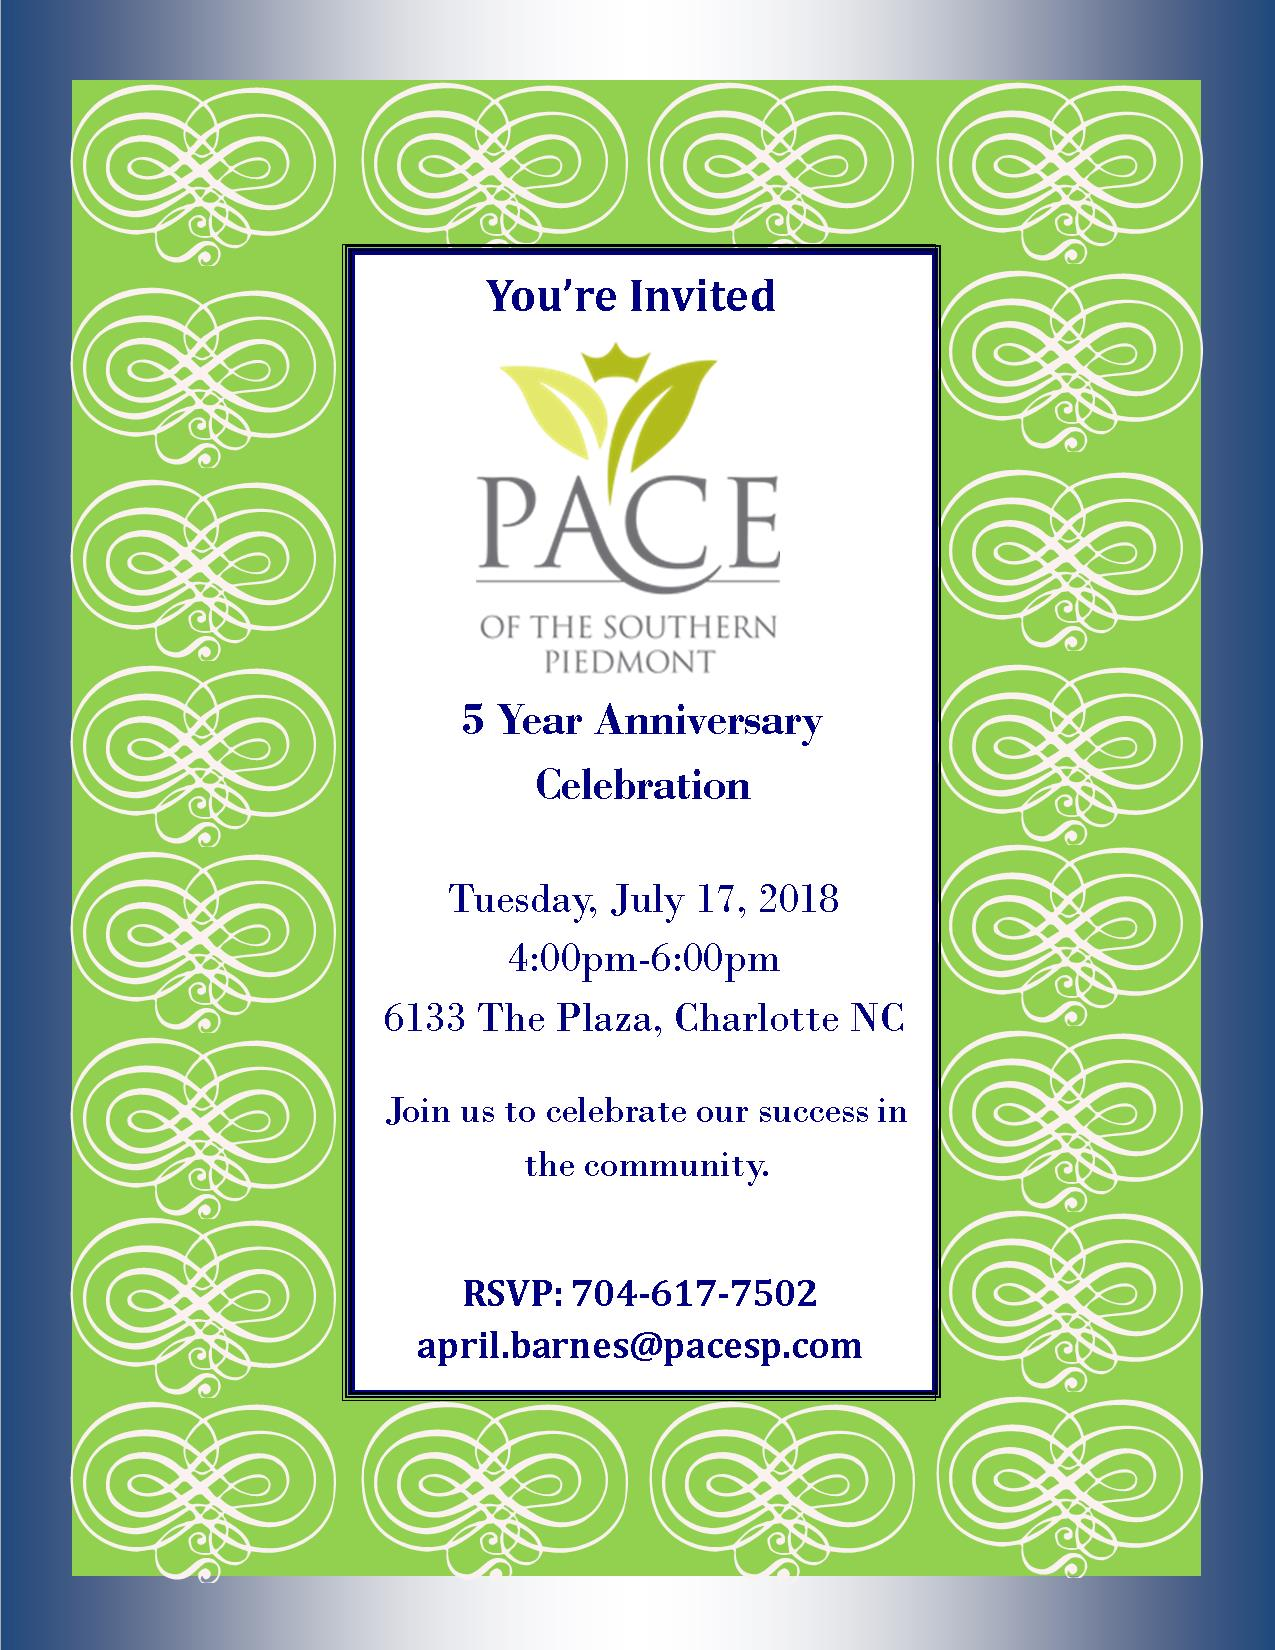 FLYER-INVITE-5-YEAR-ANNIVERSARY PACE of the Southern Piedmont Celebrates 5 Years!